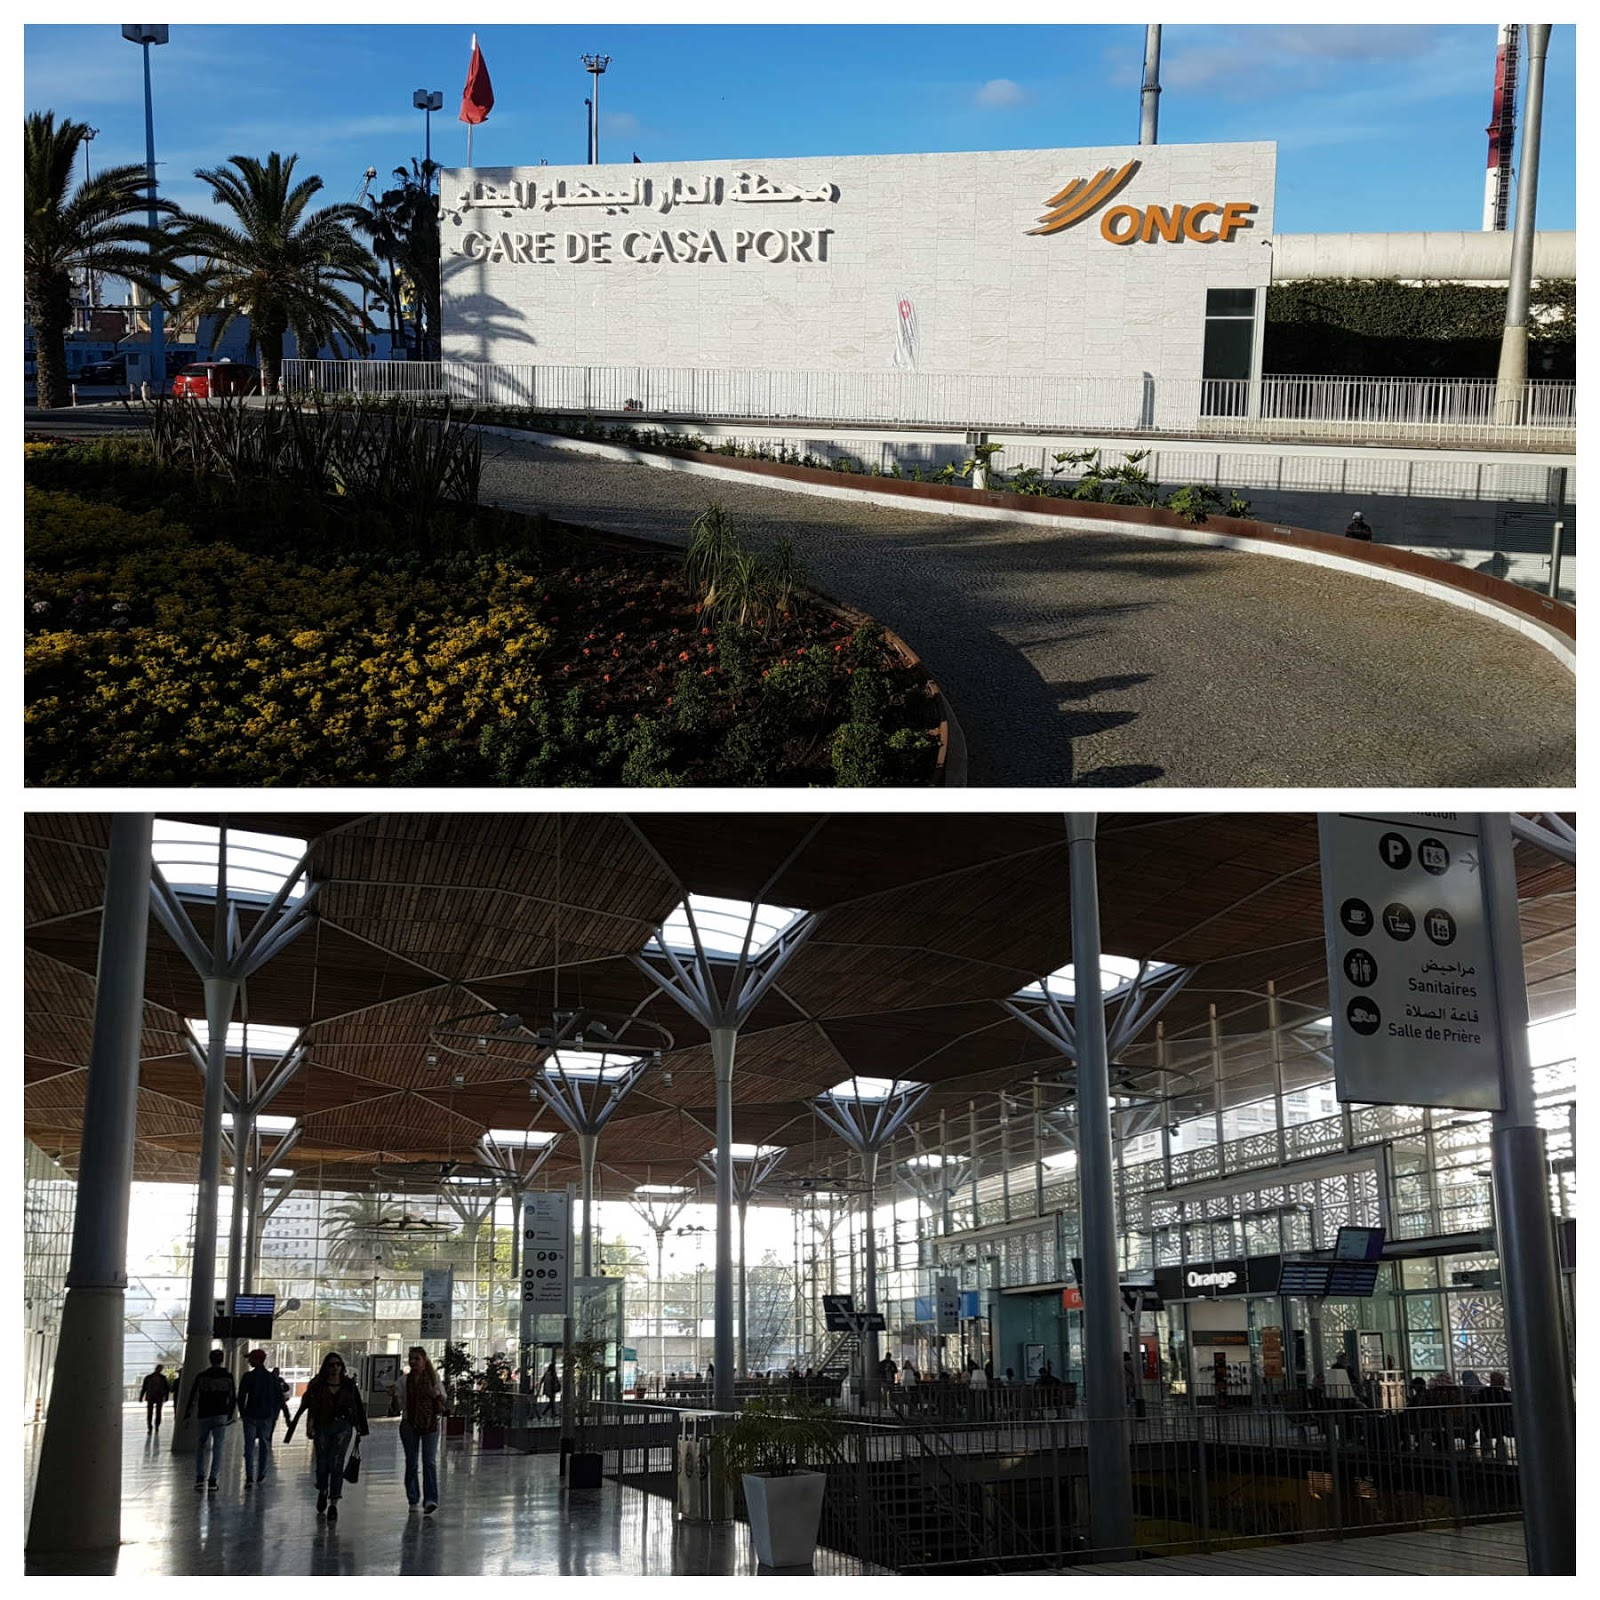 Gare de Casa Port, Casablanca, Marrocos